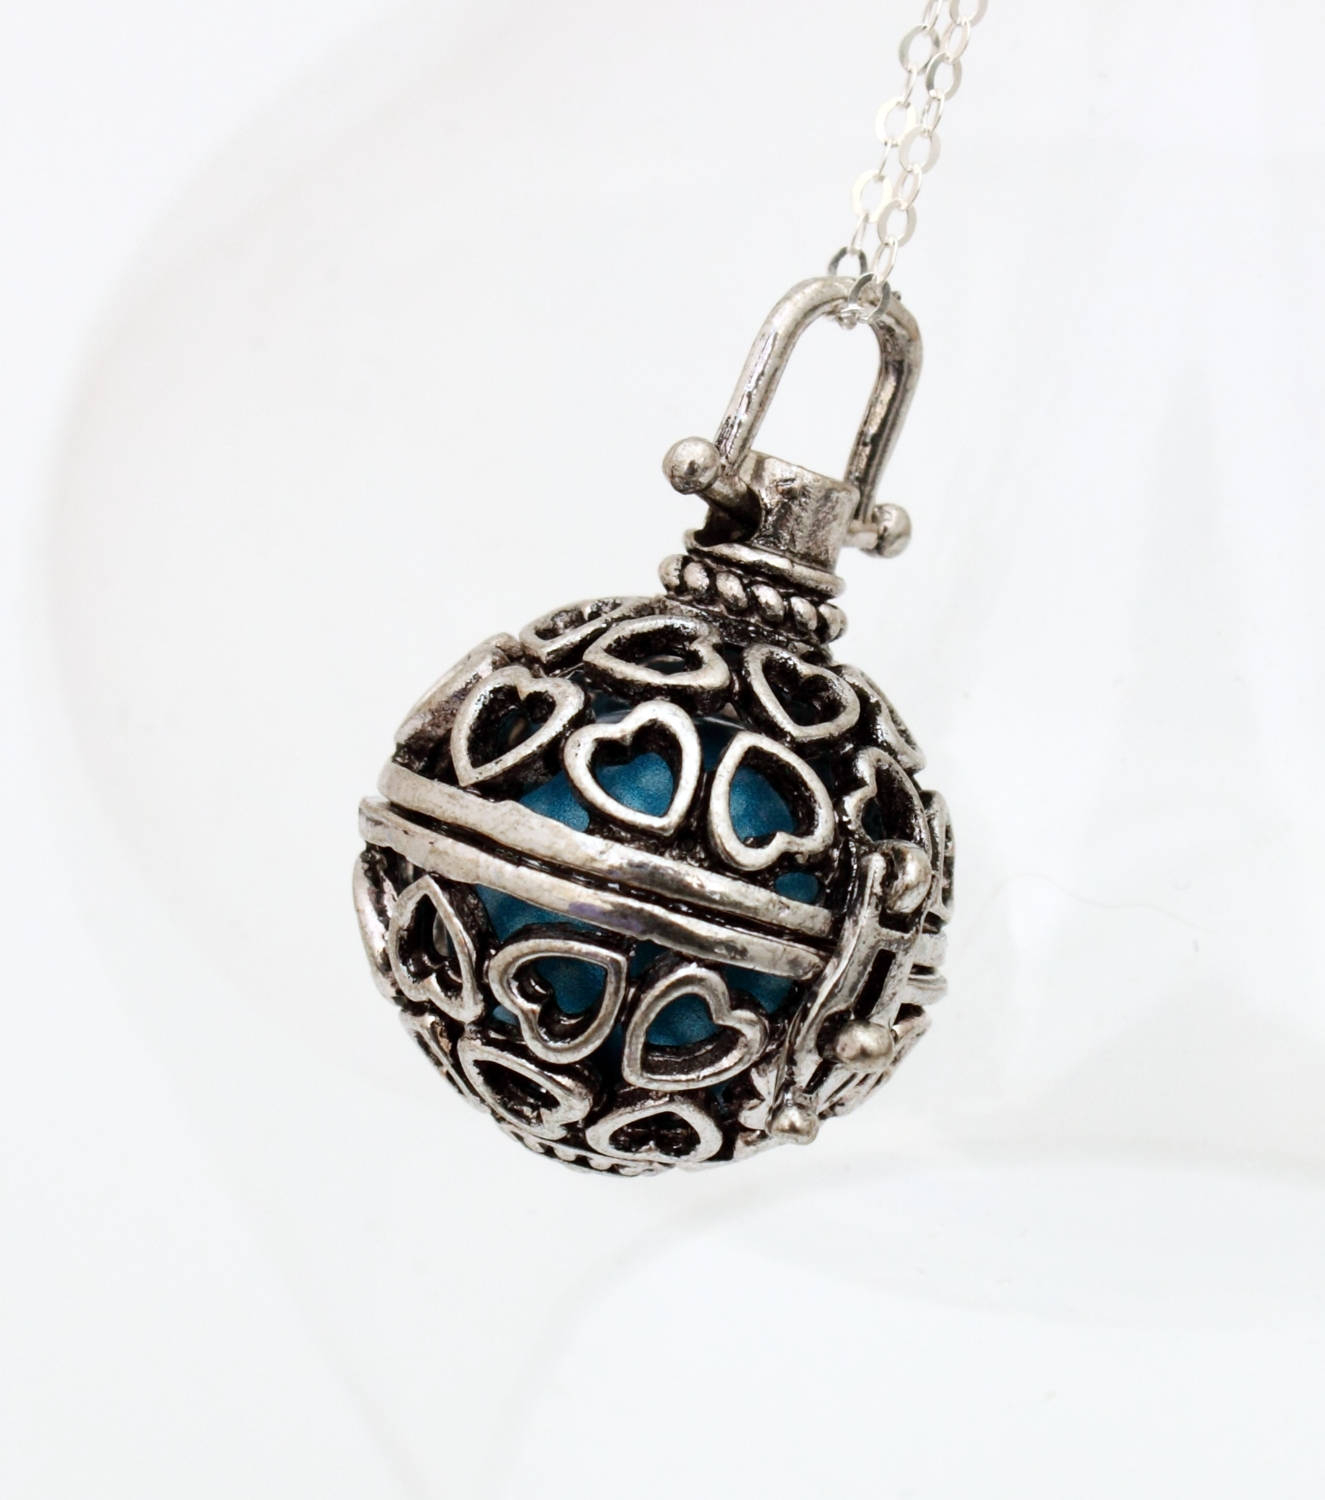 Angel Caller Filigree Heart Locket With Choice Of Coloured Chime Ball Harmony Bell Pregnancy Necklace Mexican Bola Necklace Silver Plate Pertaining To Current Chiming Filigree Hearts Pendant Necklaces (View 25 of 25)